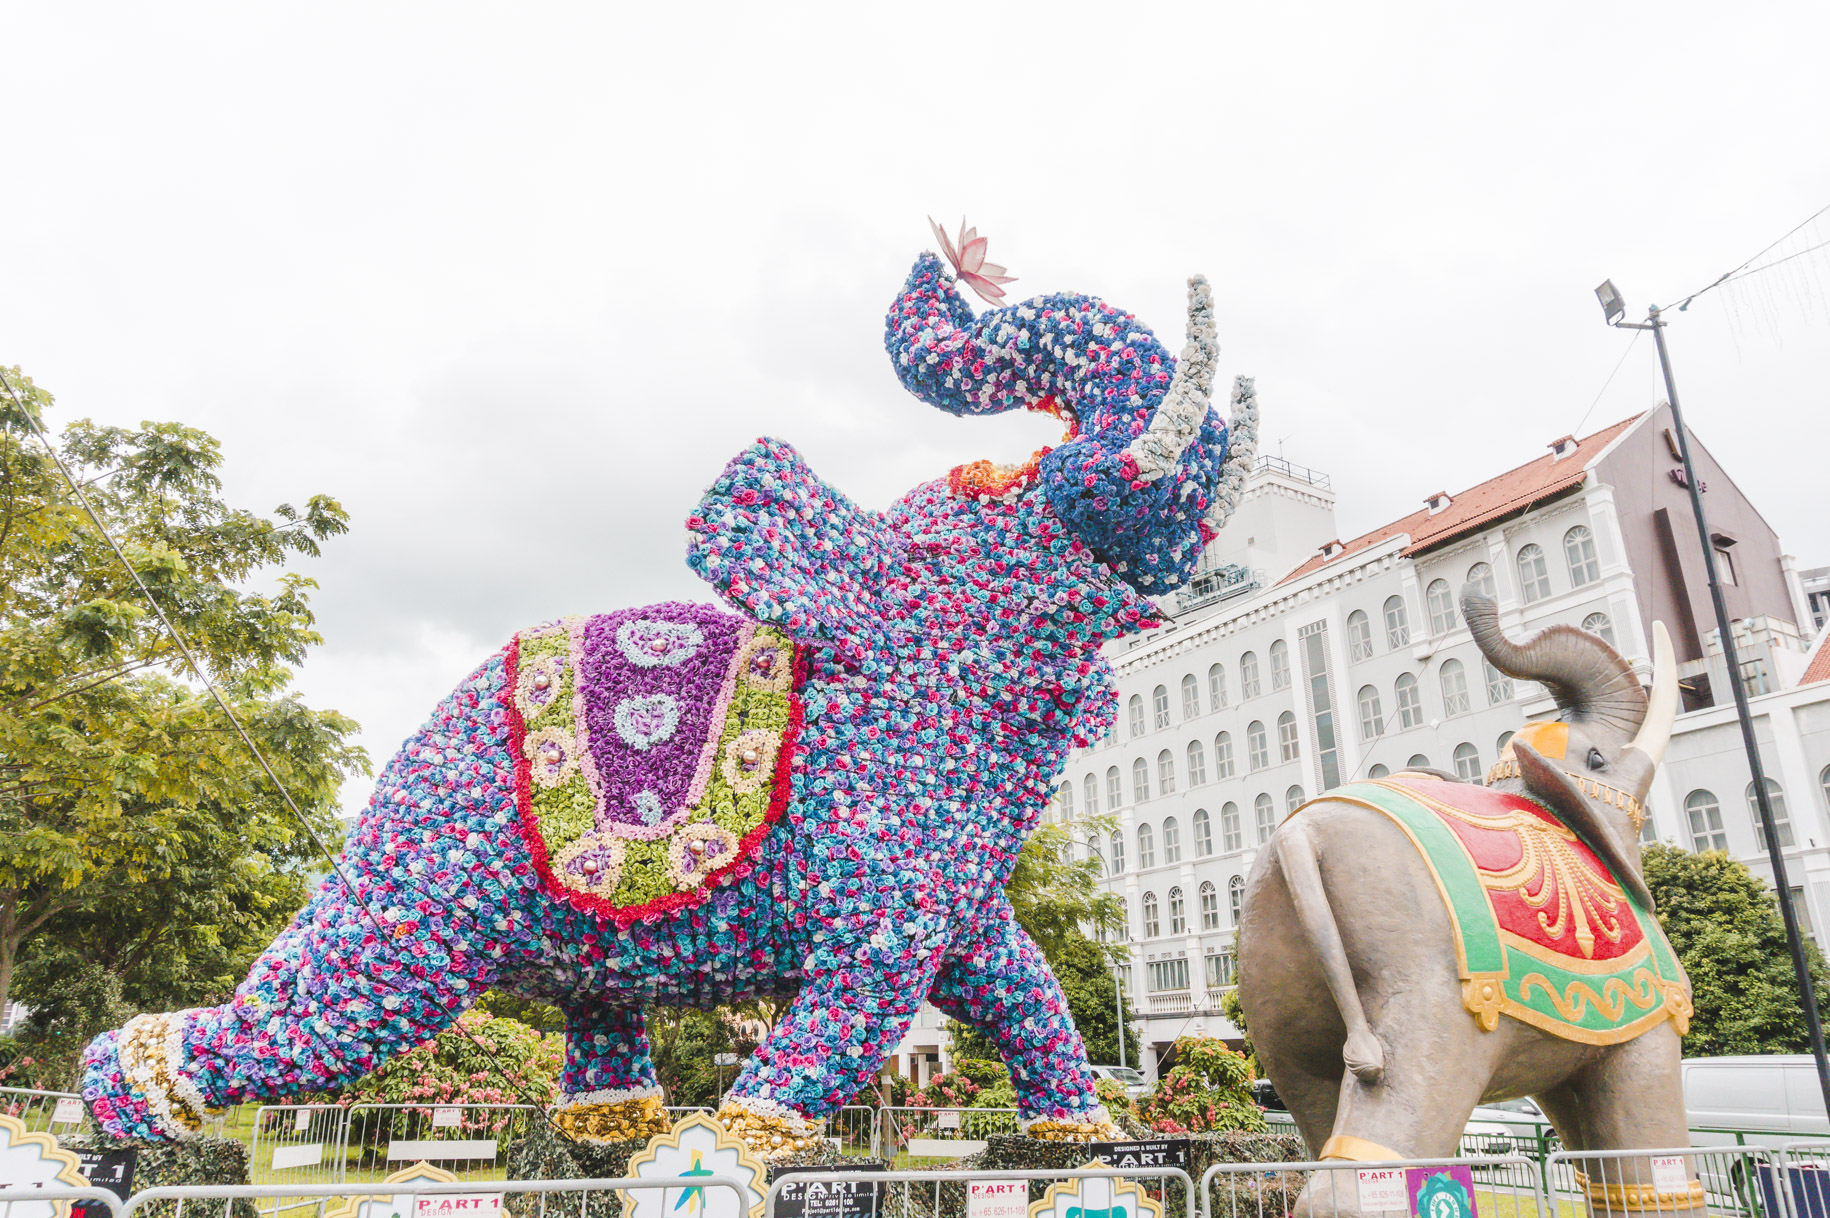 Colourful elephant statues in Little India in Singapore.